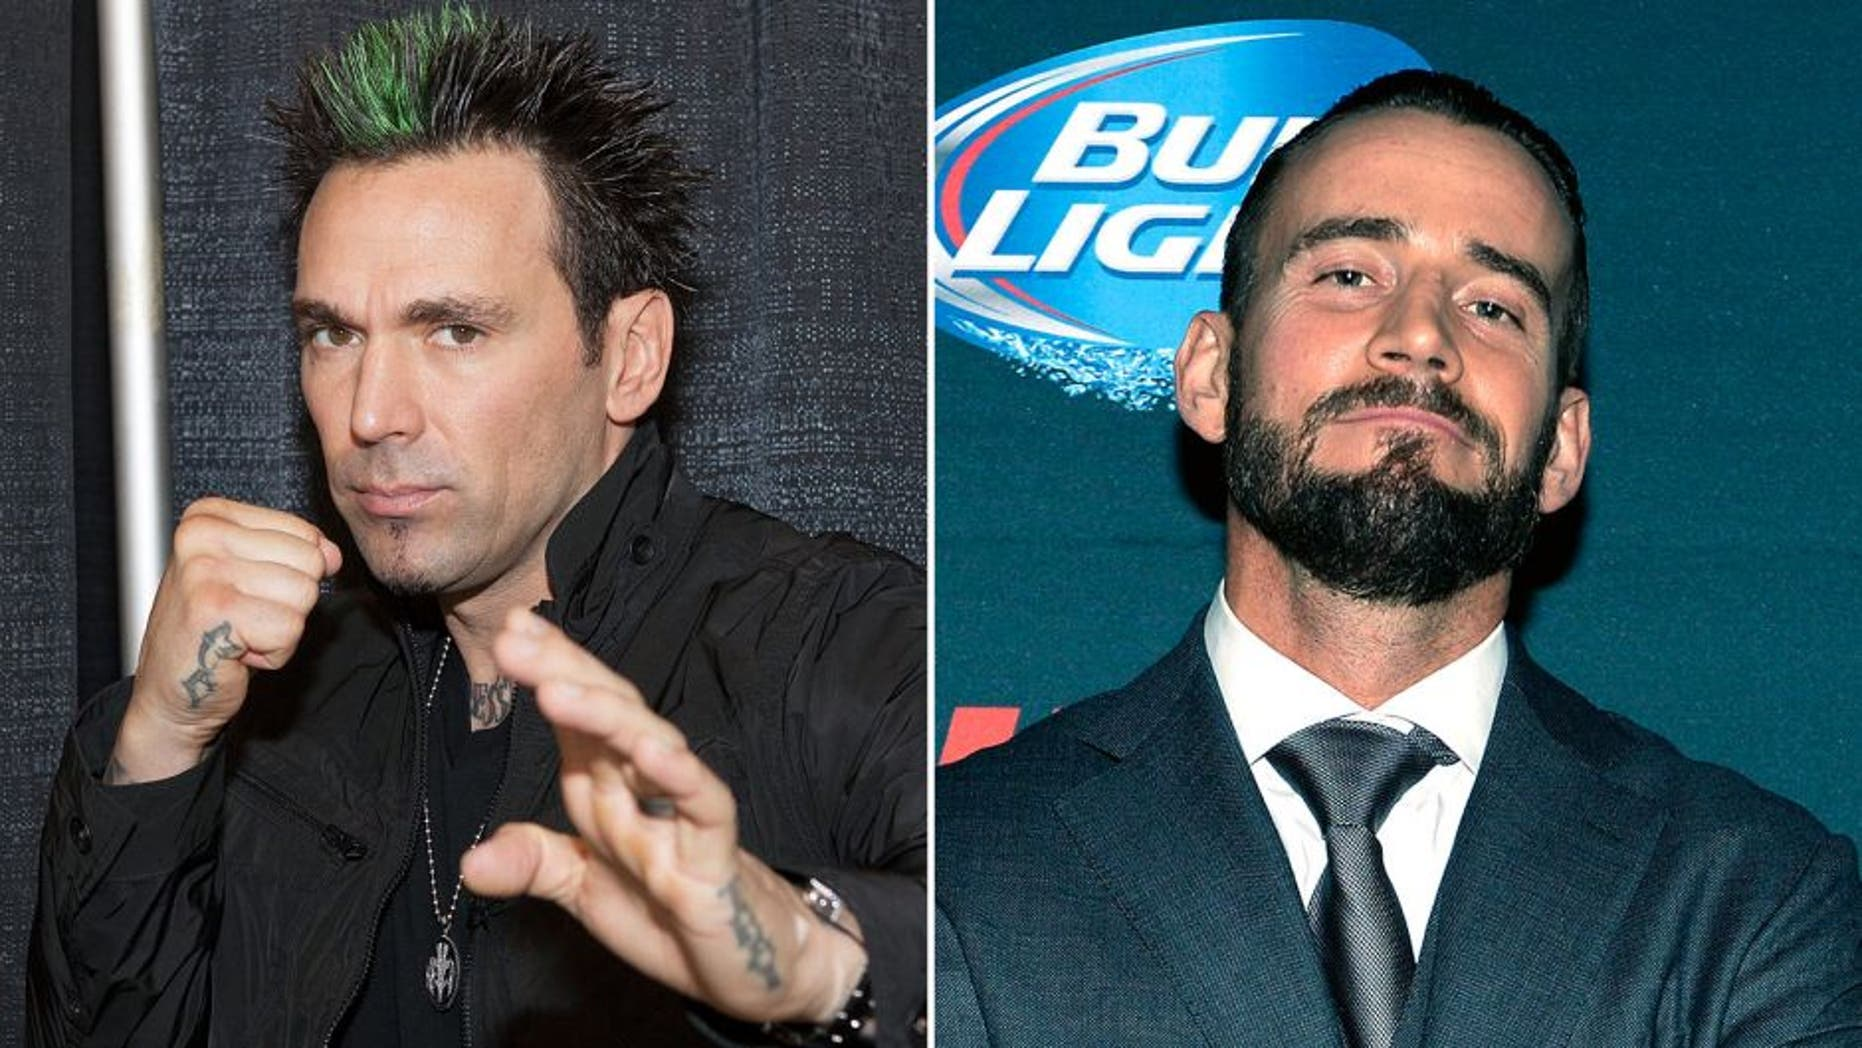 CHICAGO, IL - AUGUST 23: Jason David Frank attends Wizard World Chicago Comic Con 2014 at Donald E. Stephens Convention Center on August 23, 2014 in Chicago, Illinois. (Photo by Gabriel Grams/FilmMagic) LAS VEGAS, NV - DECEMBER 06: Phil 'CM Punk' Brooks poses backstage during the UFC 181 event inside the Mandalay Bay Events Center on December 6, 2014 in Las Vegas, Nevada. (Photo by Jeff Bottari/Zuffa LLC/Zuffa LLC via Getty Images)